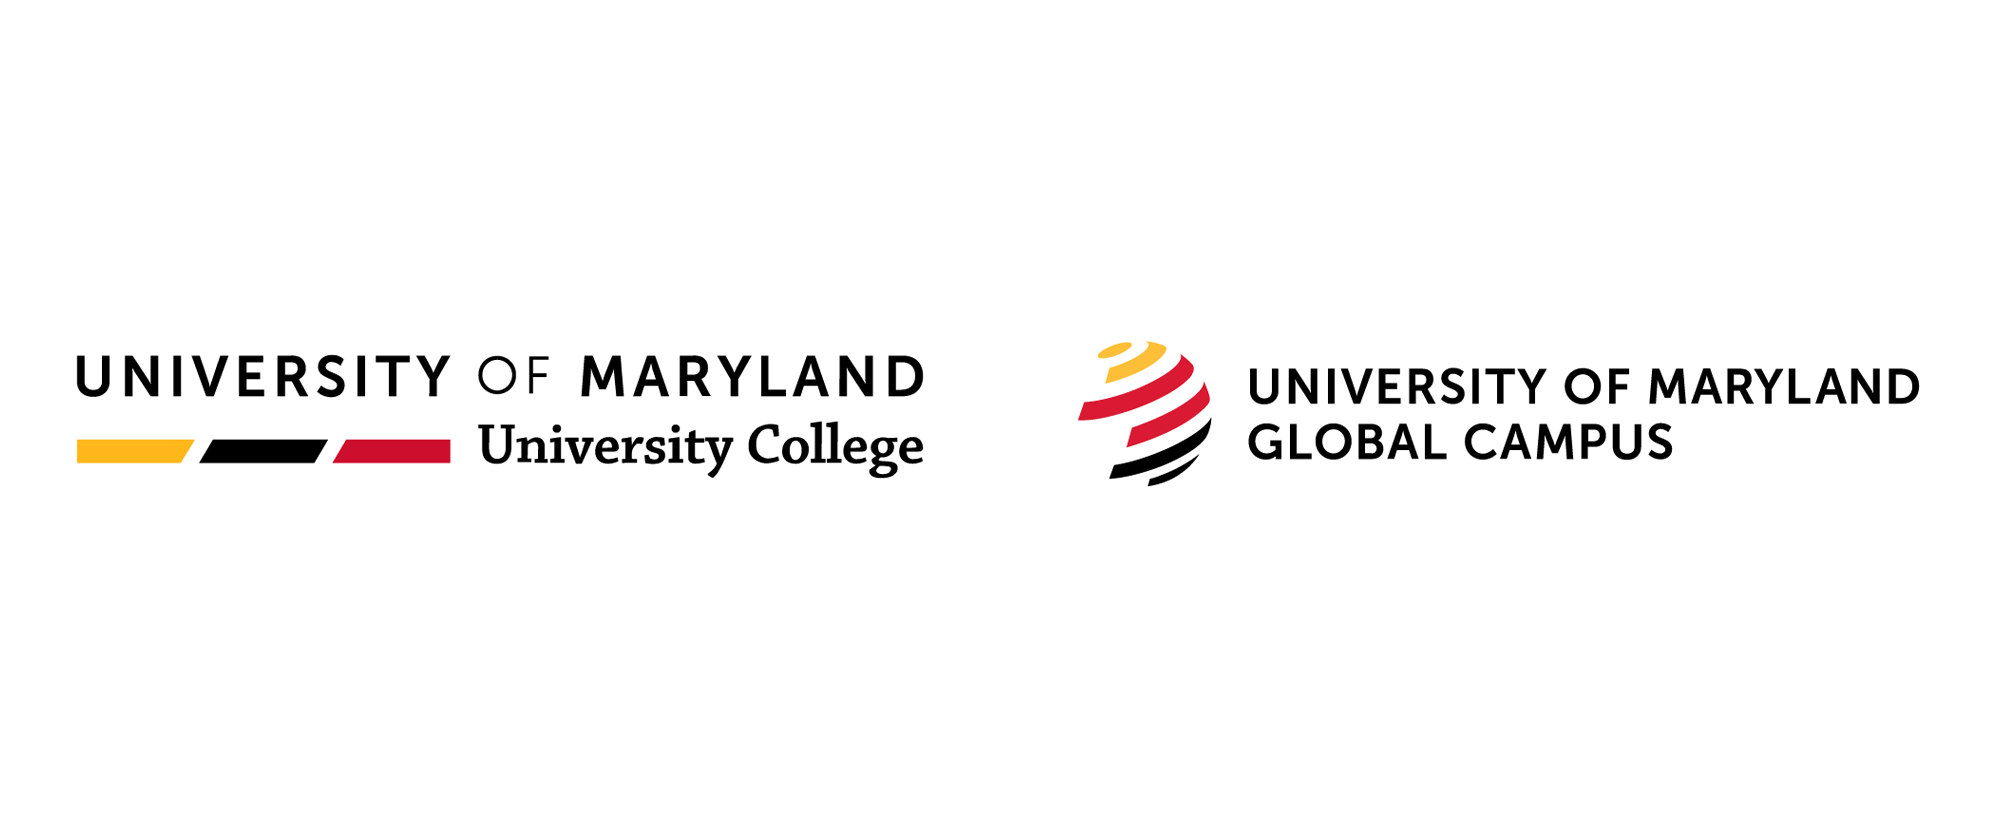 New Name and Logo for University of Maryland Global Campus